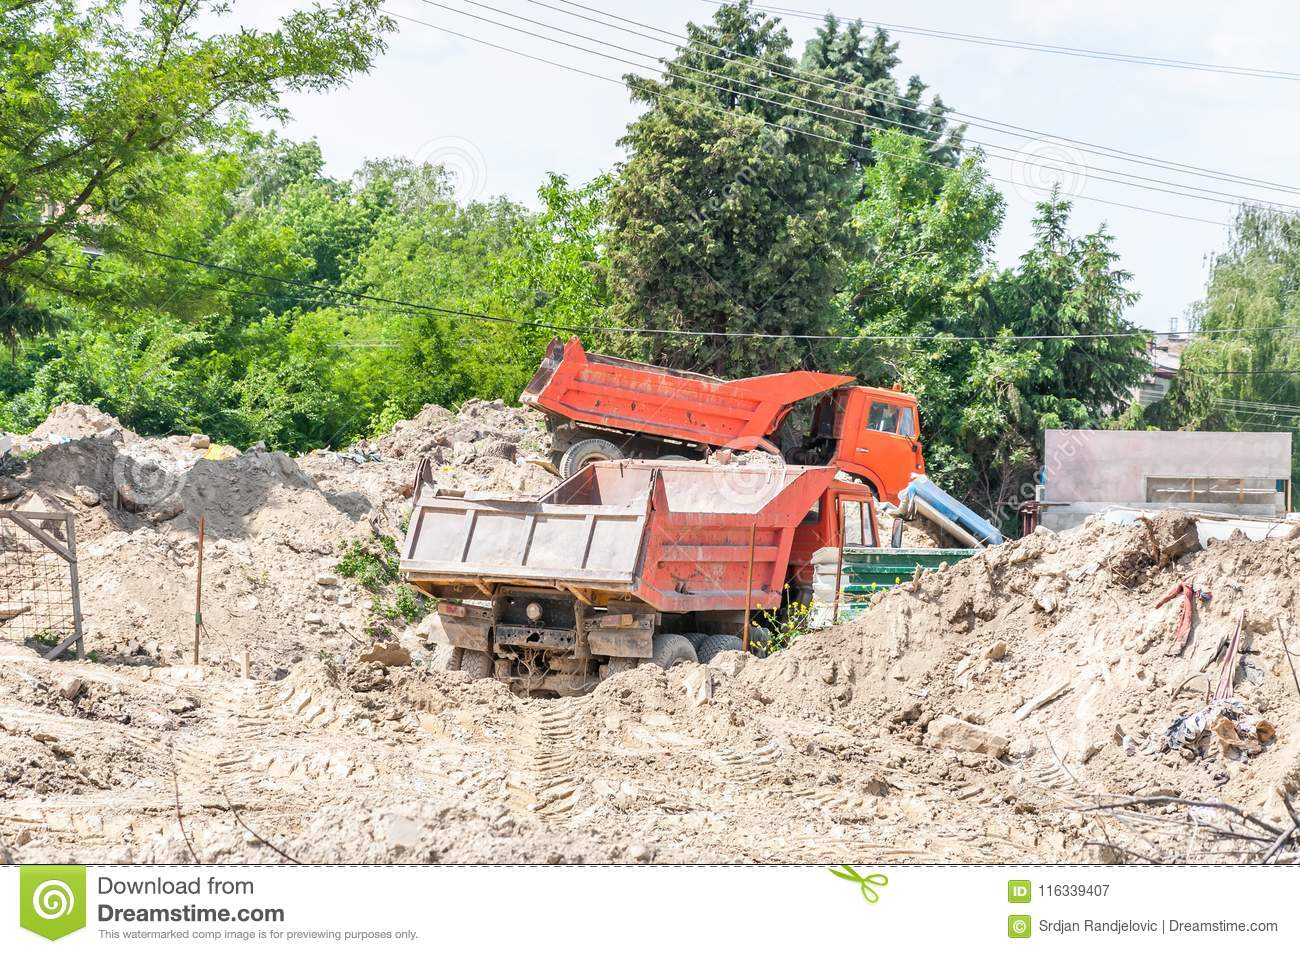 Two industrial tipper trucks on the earth or ground excavation site ready to be loaded